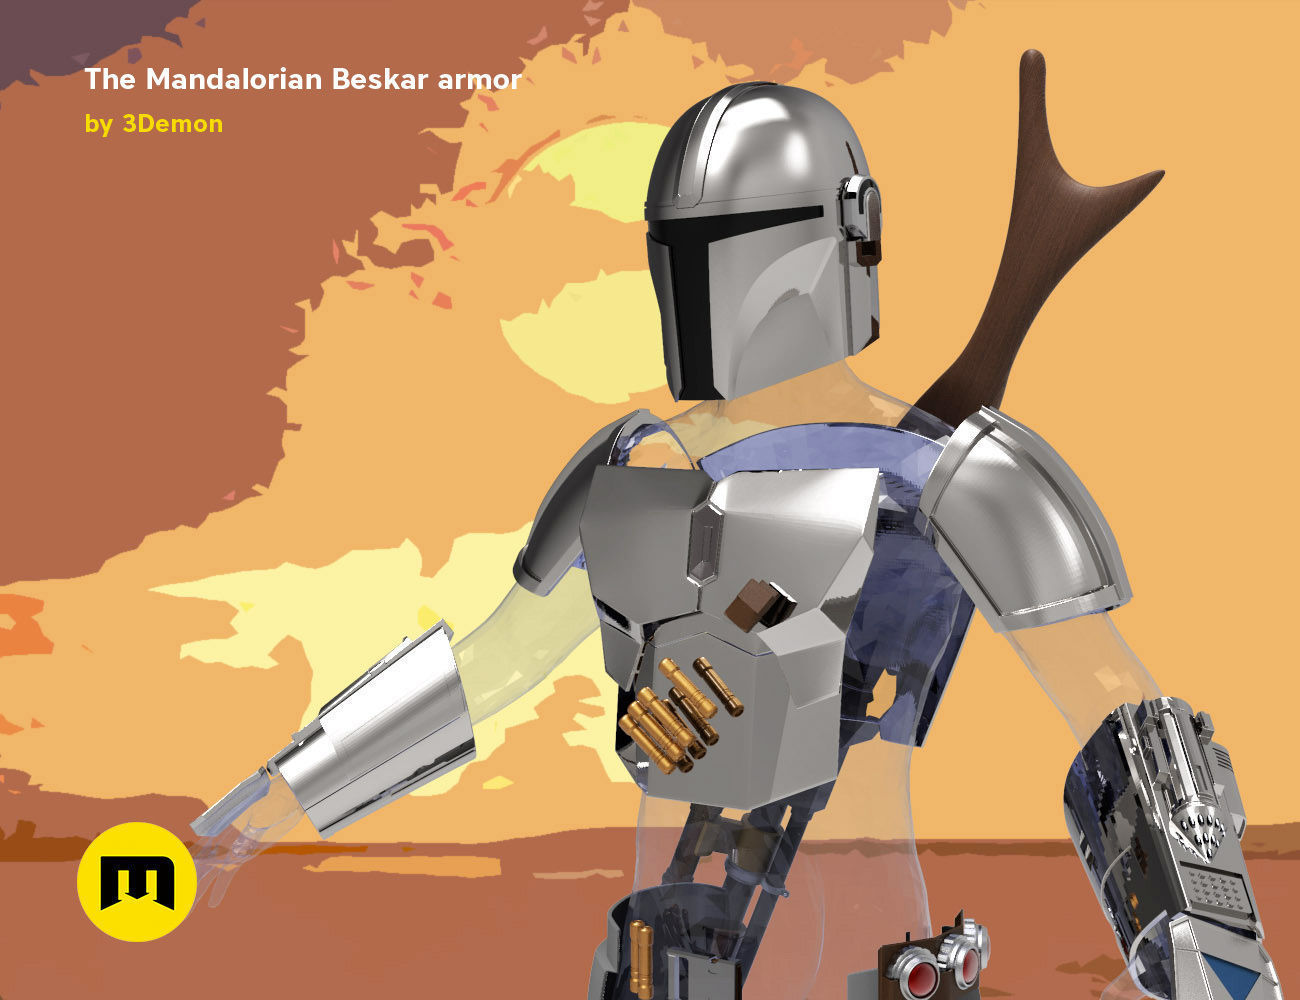 The Mandalorian - full armor and weapons